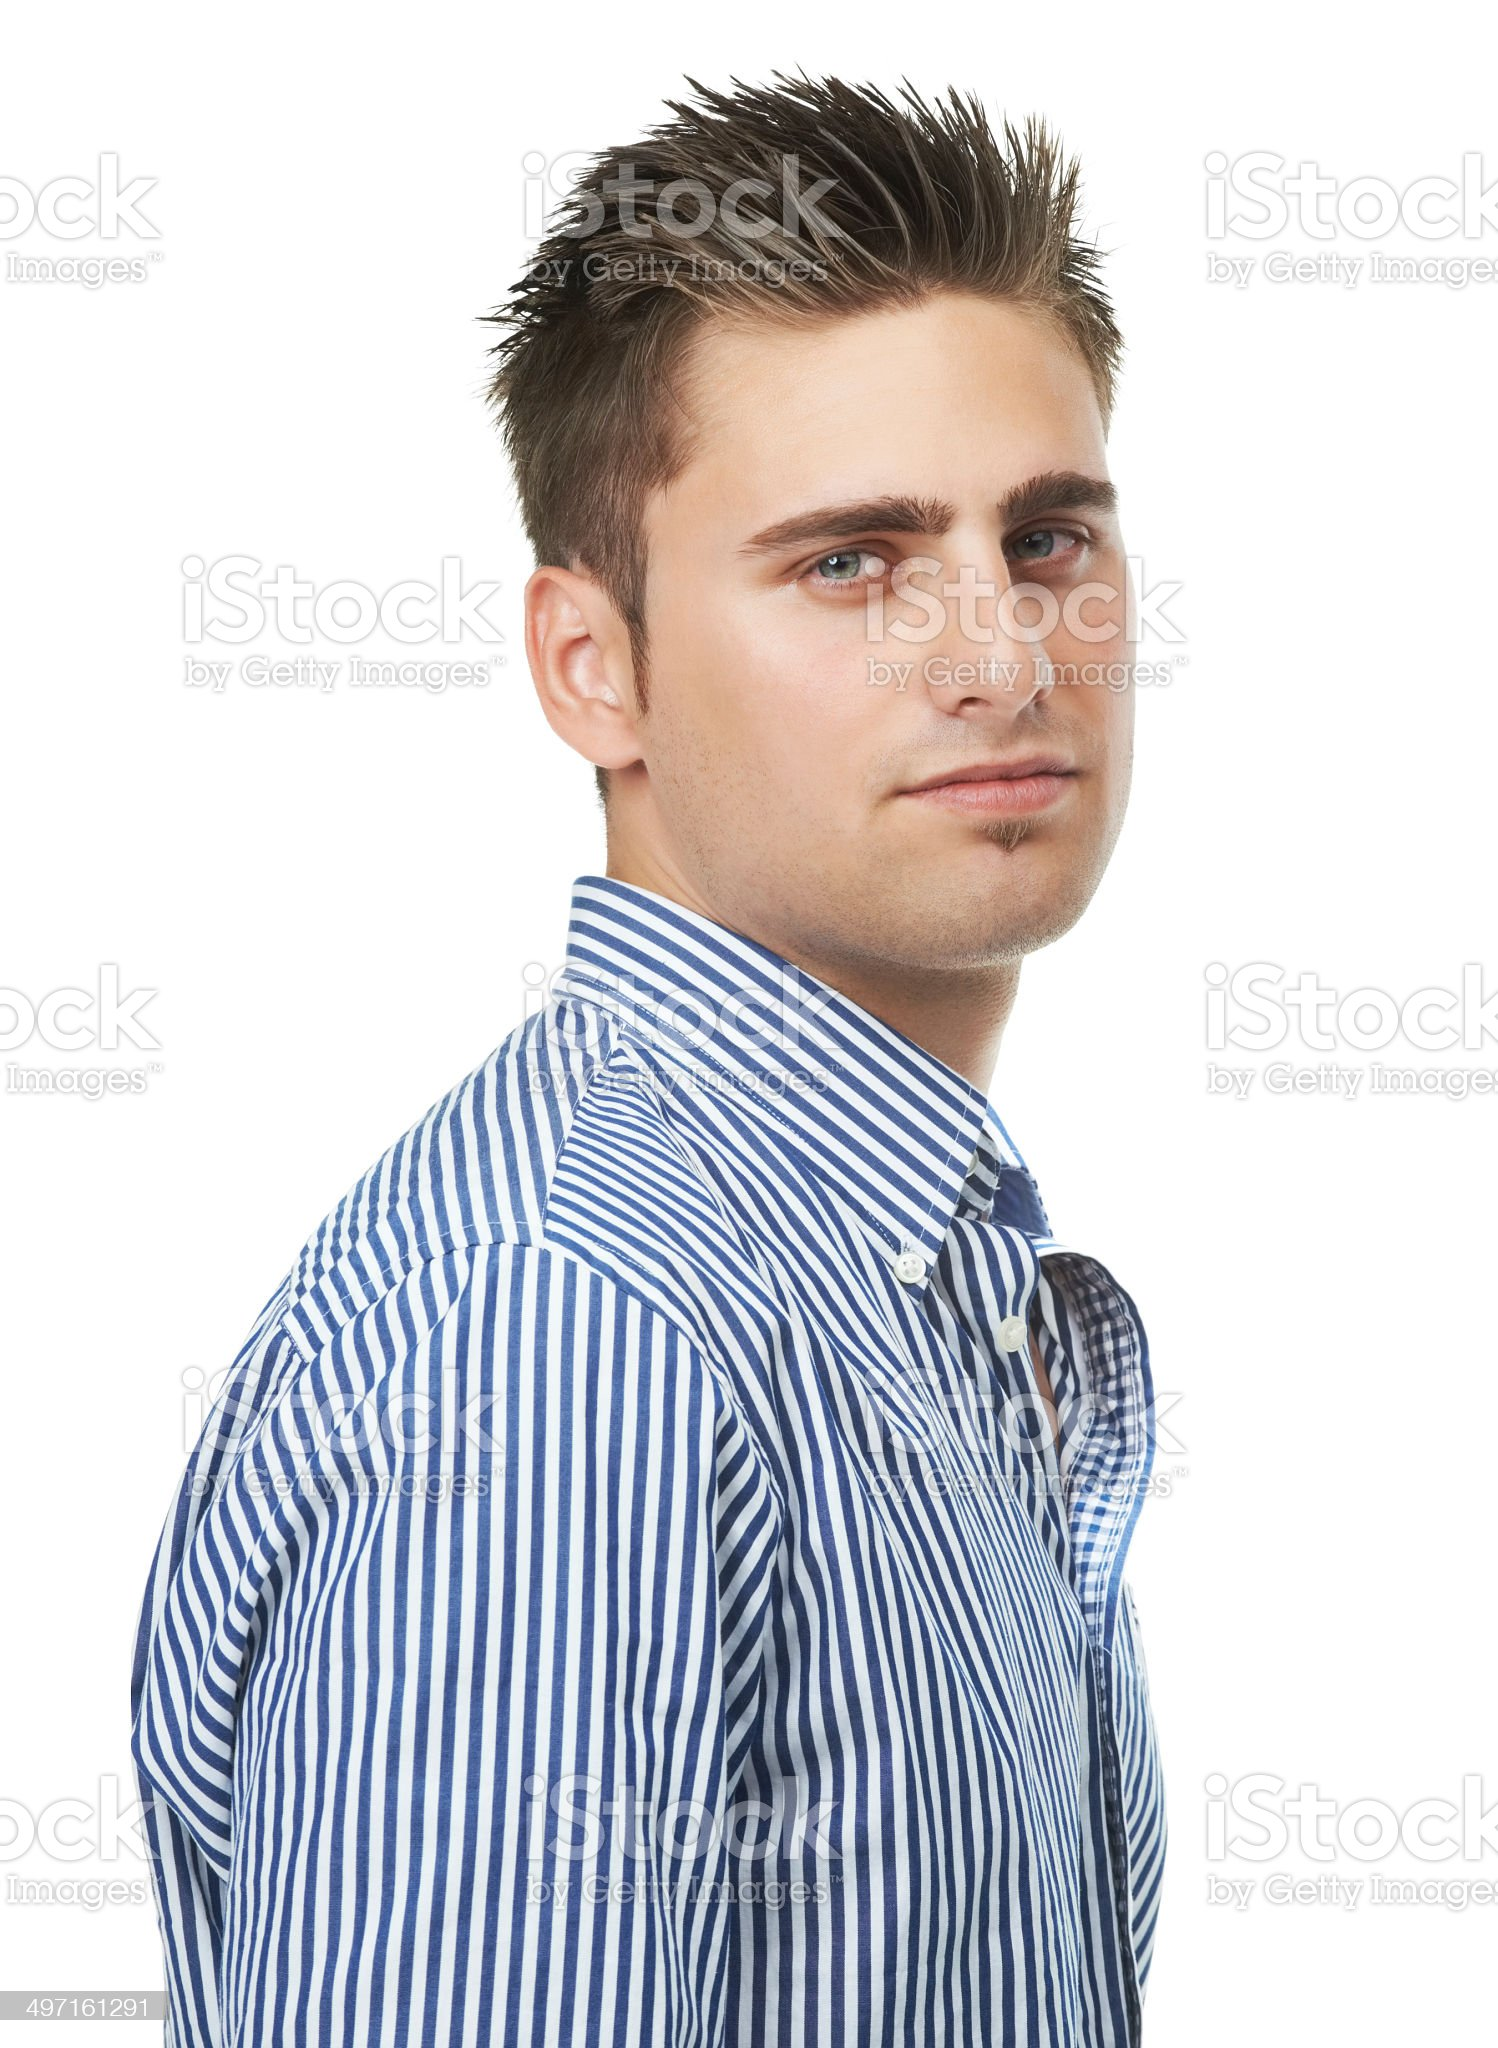 Giving his best pokerface royalty-free stock photo